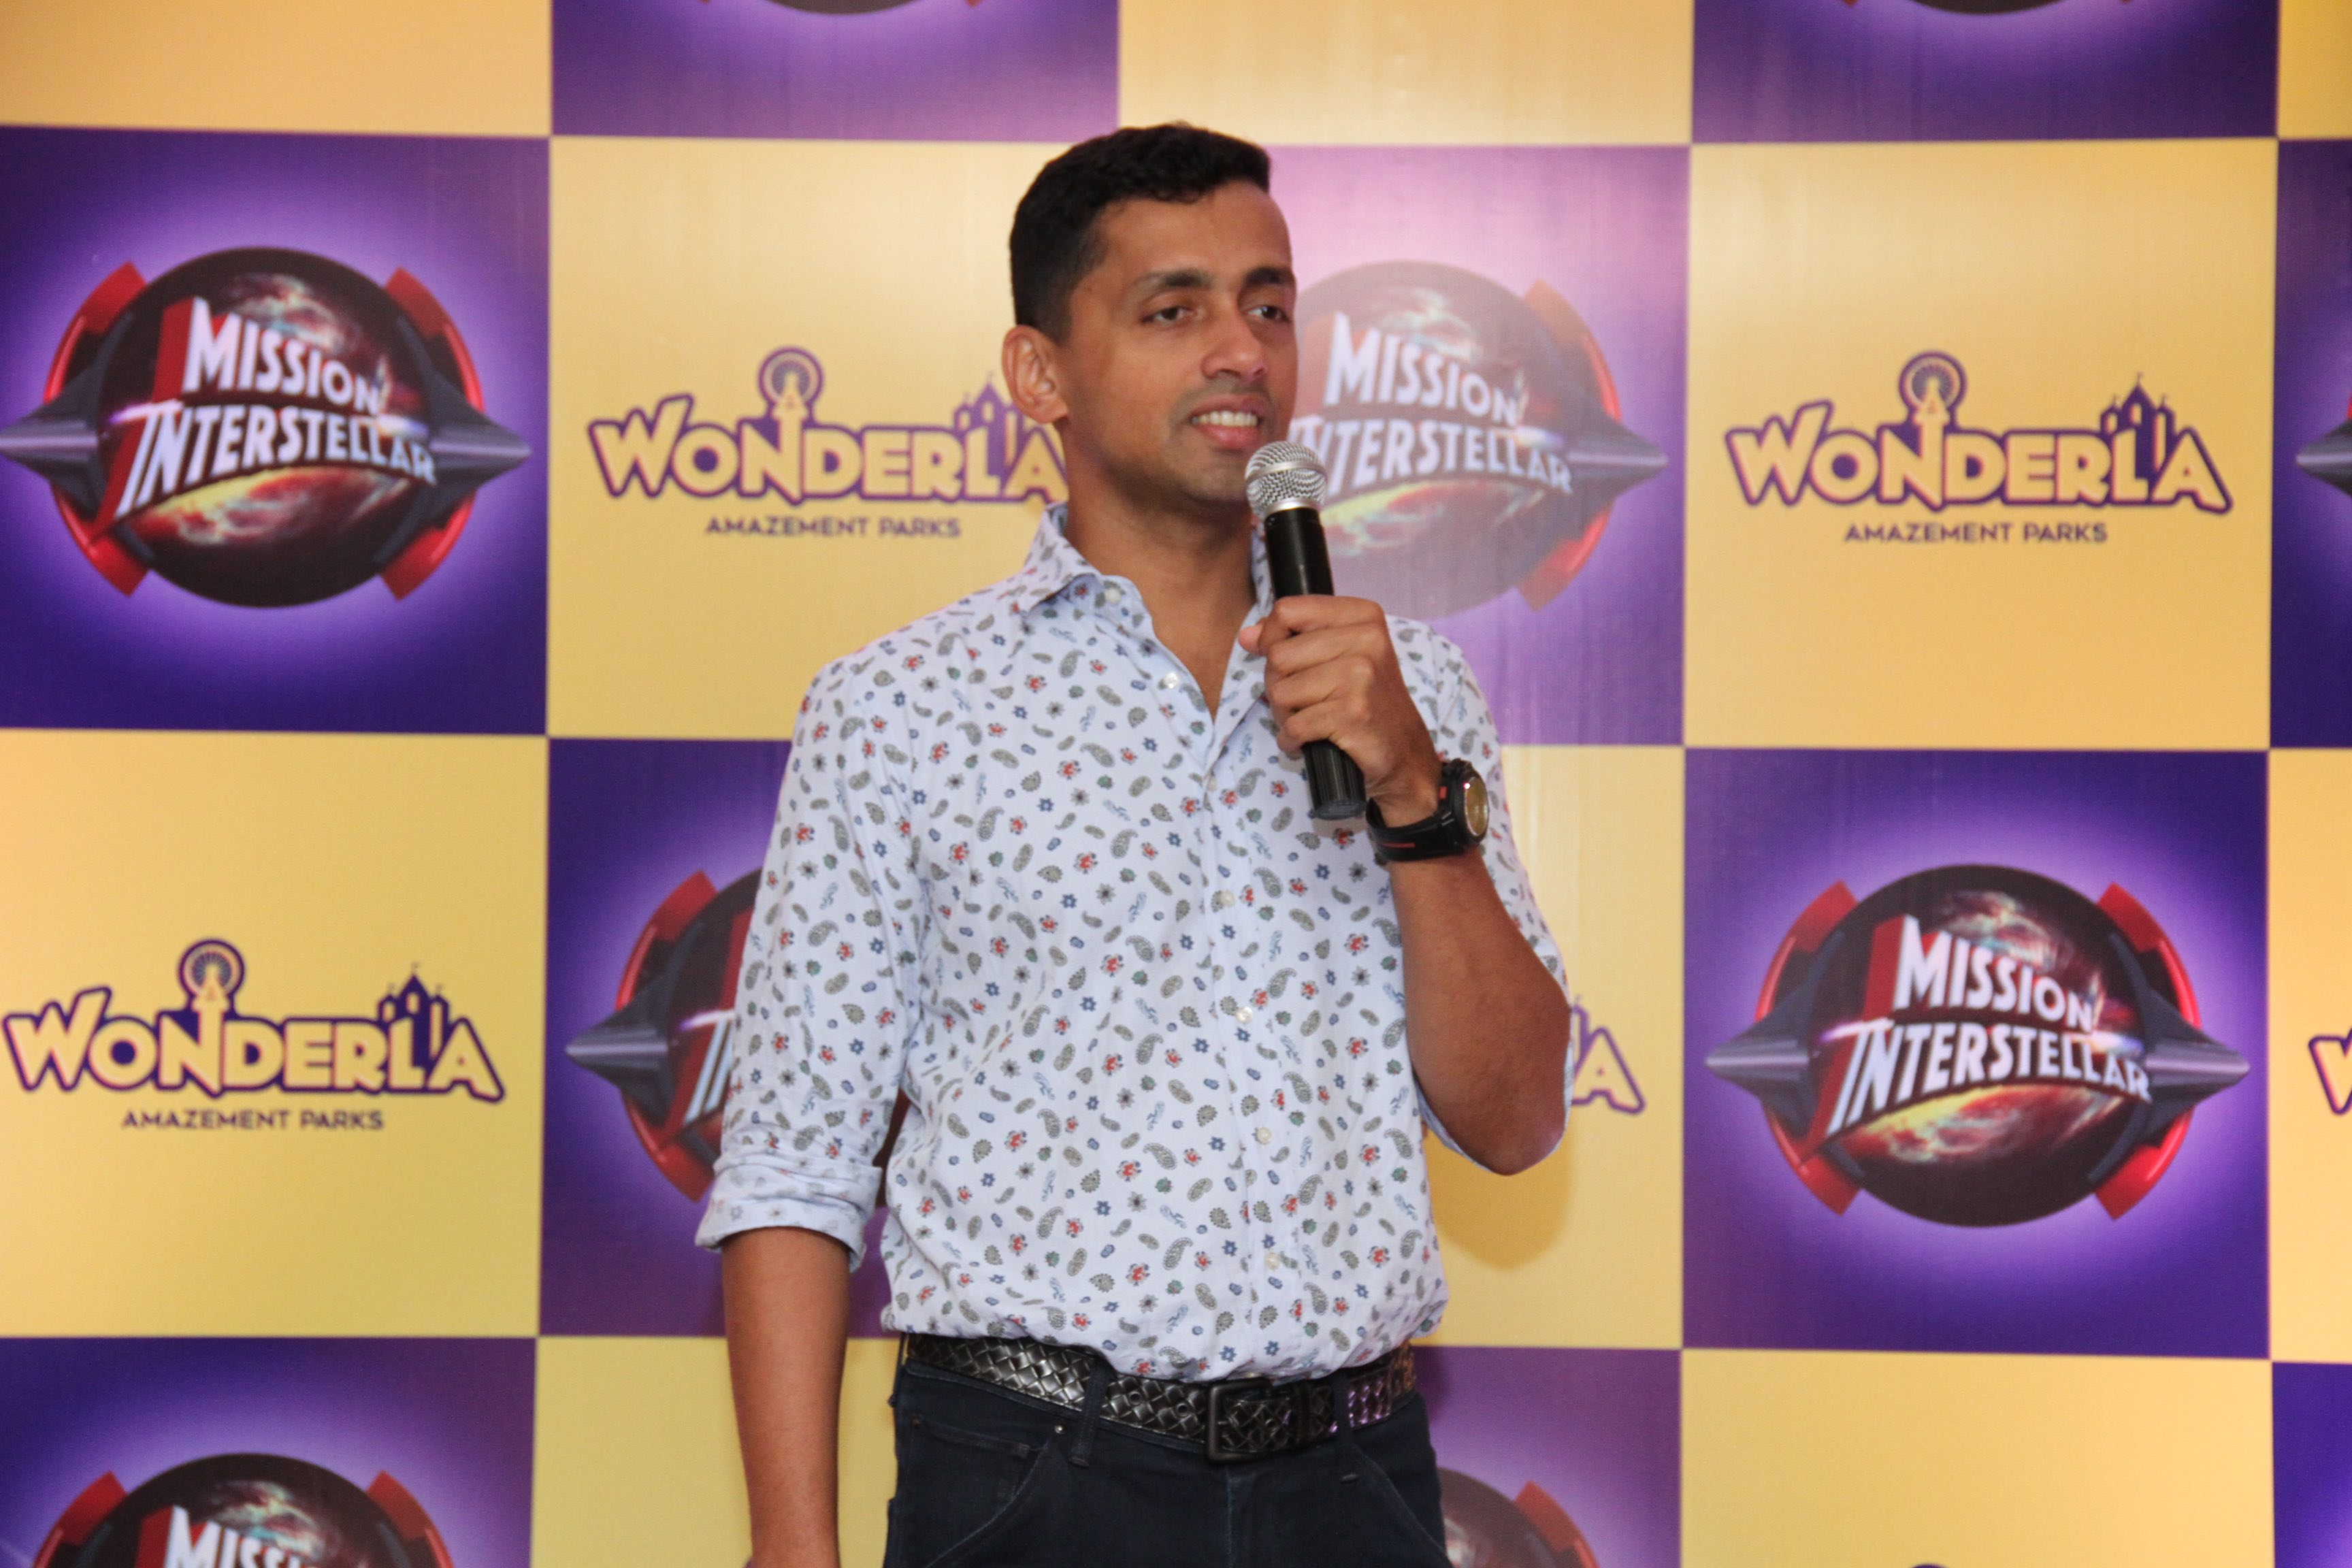 mr-arun-k-chittilappilly-managing-director-wonderla-holidays-ltd-speaking-on-the-occation